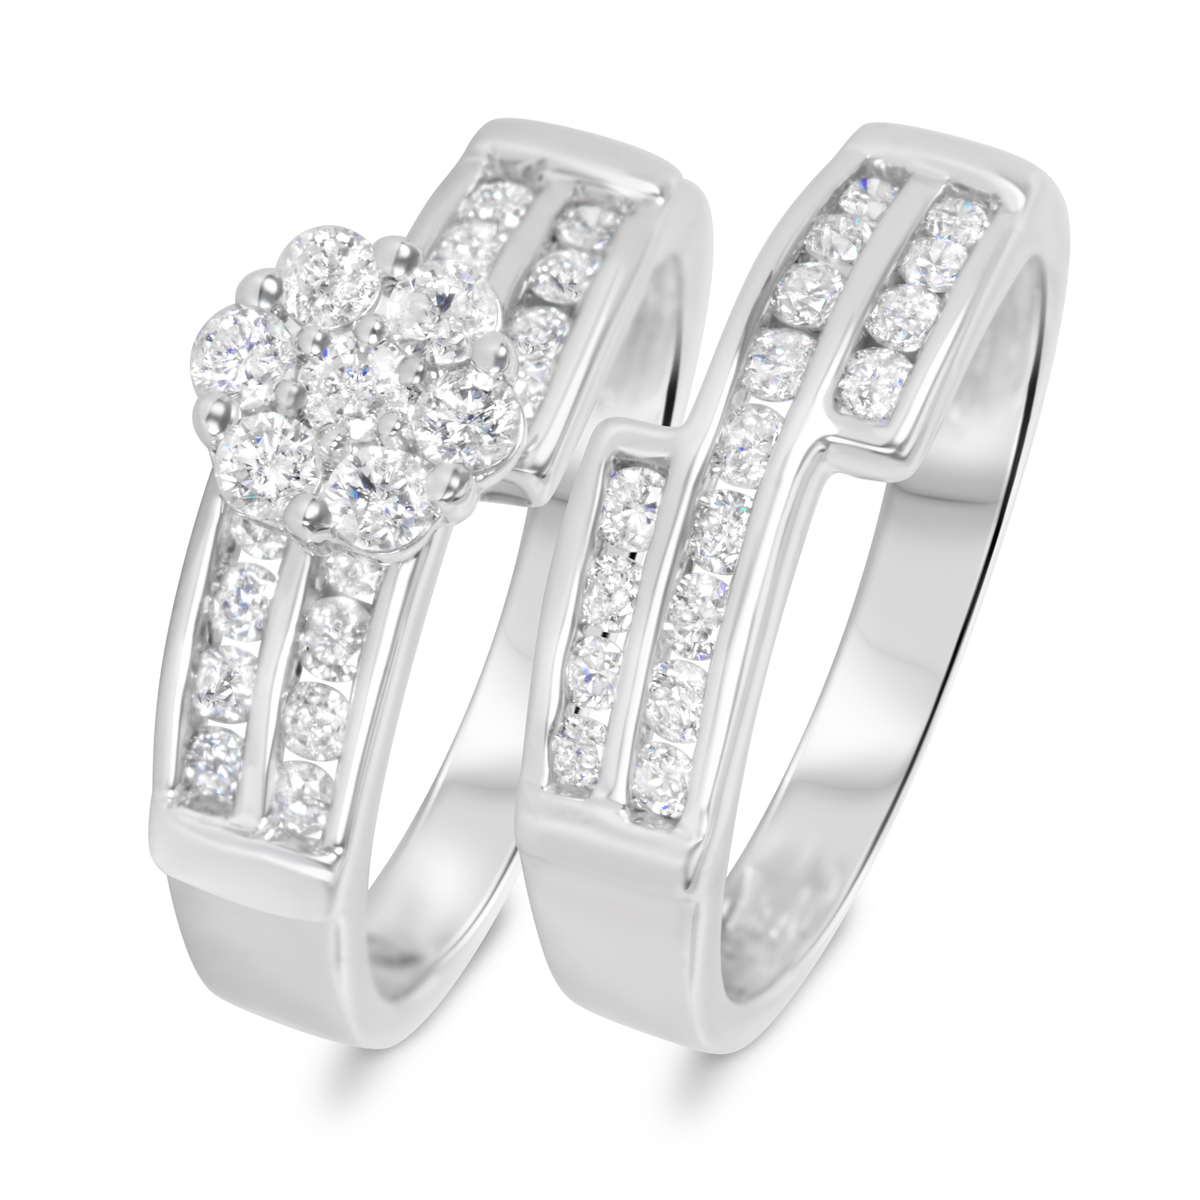 1 1/10 CT. T.W. Diamond Ladies' Bridal Wedding Ring Set 10K White Gold